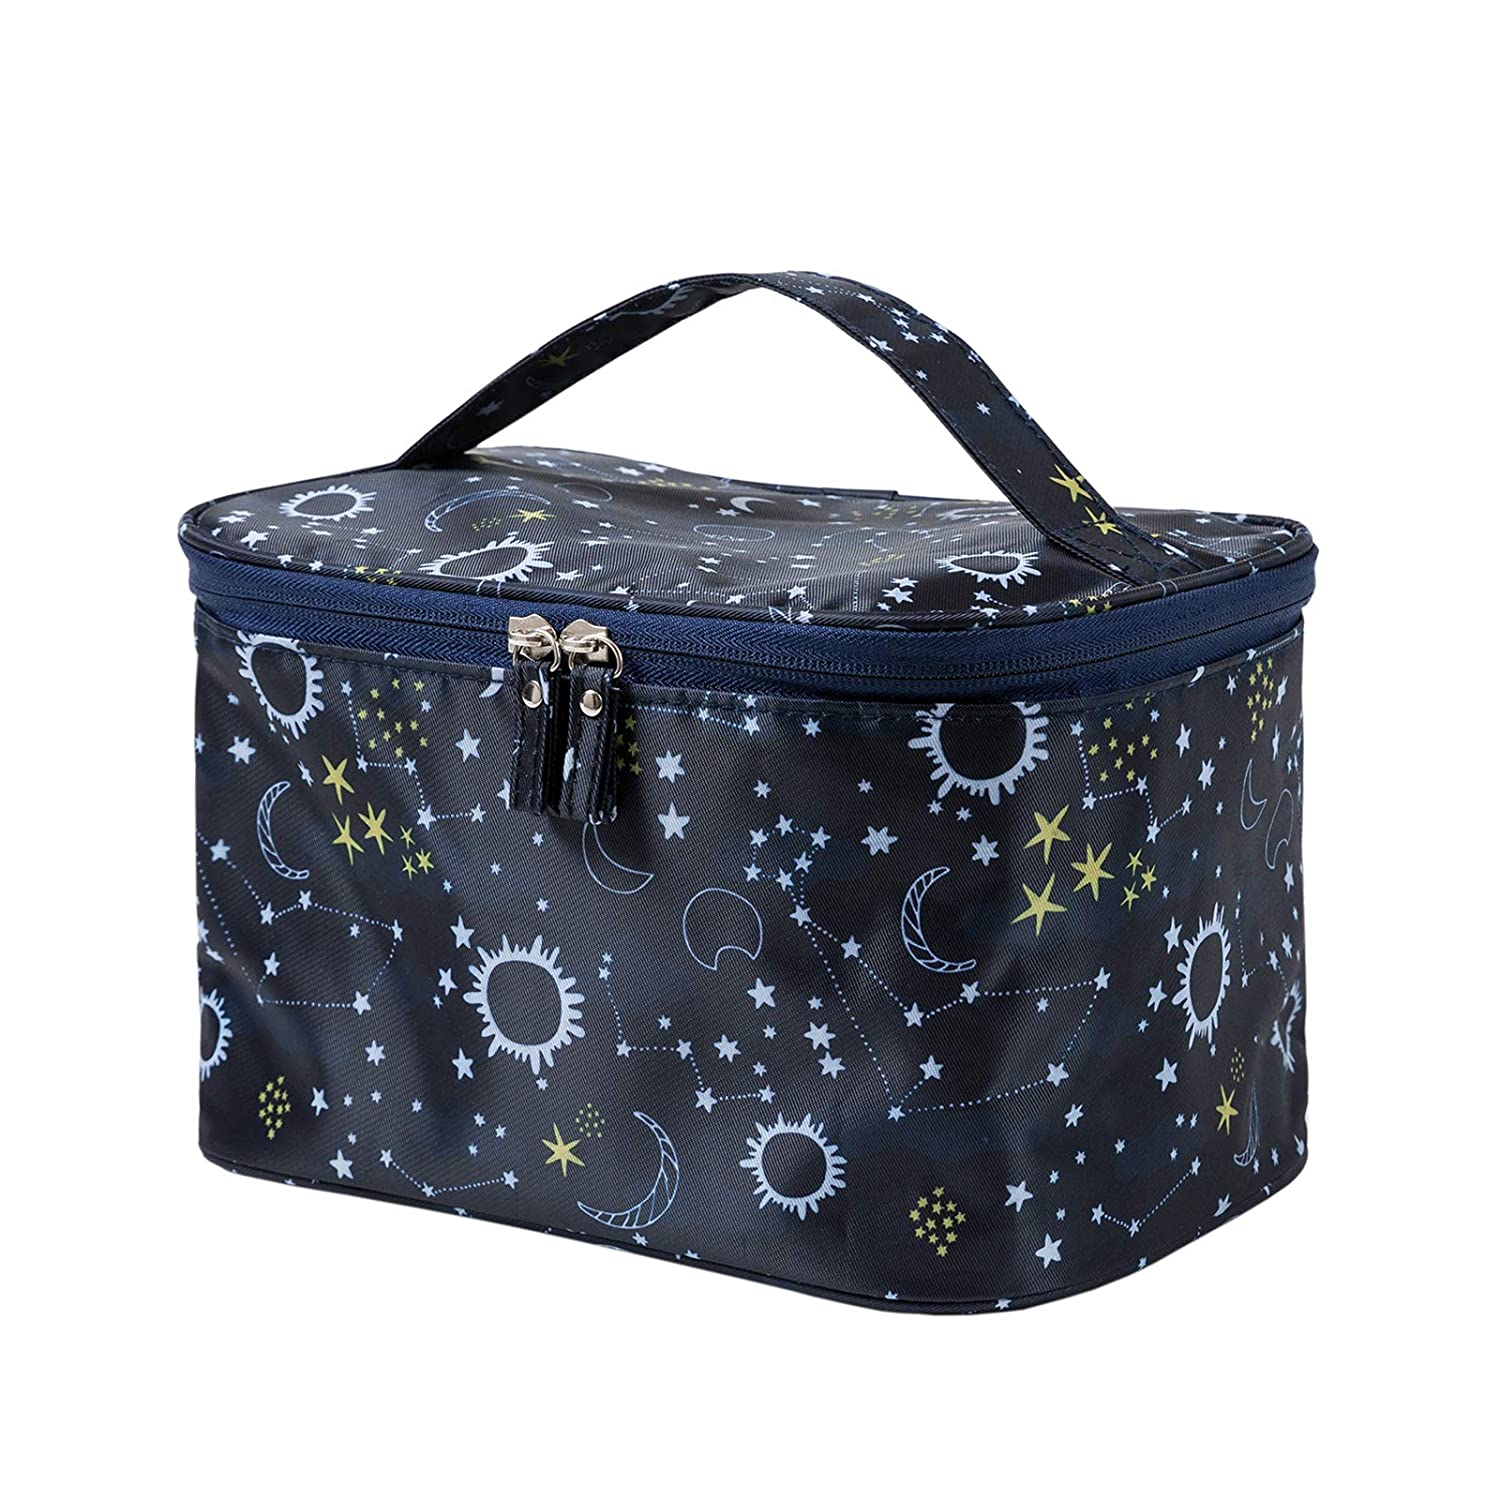 HOYOFO Women Makeup Bag Travel Cosmetic Bags with Mesh Pocket Waterproof Large Portable Toiletry Storage for Women, Starry Sky